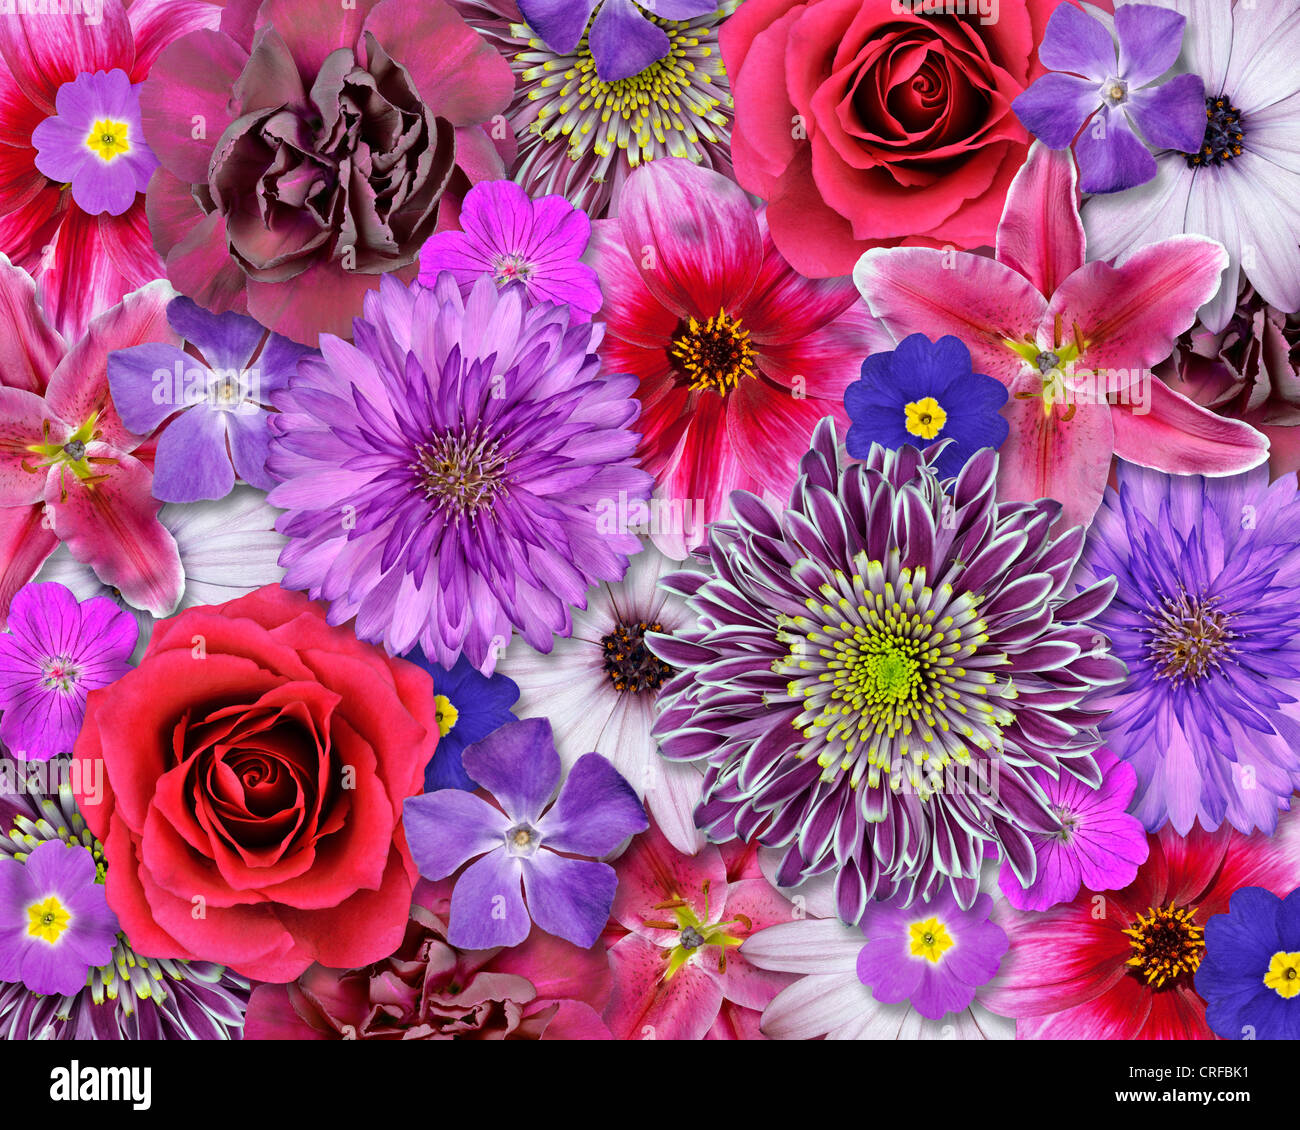 Flower Collection Pink Purple Blue Red White Set Dahlia